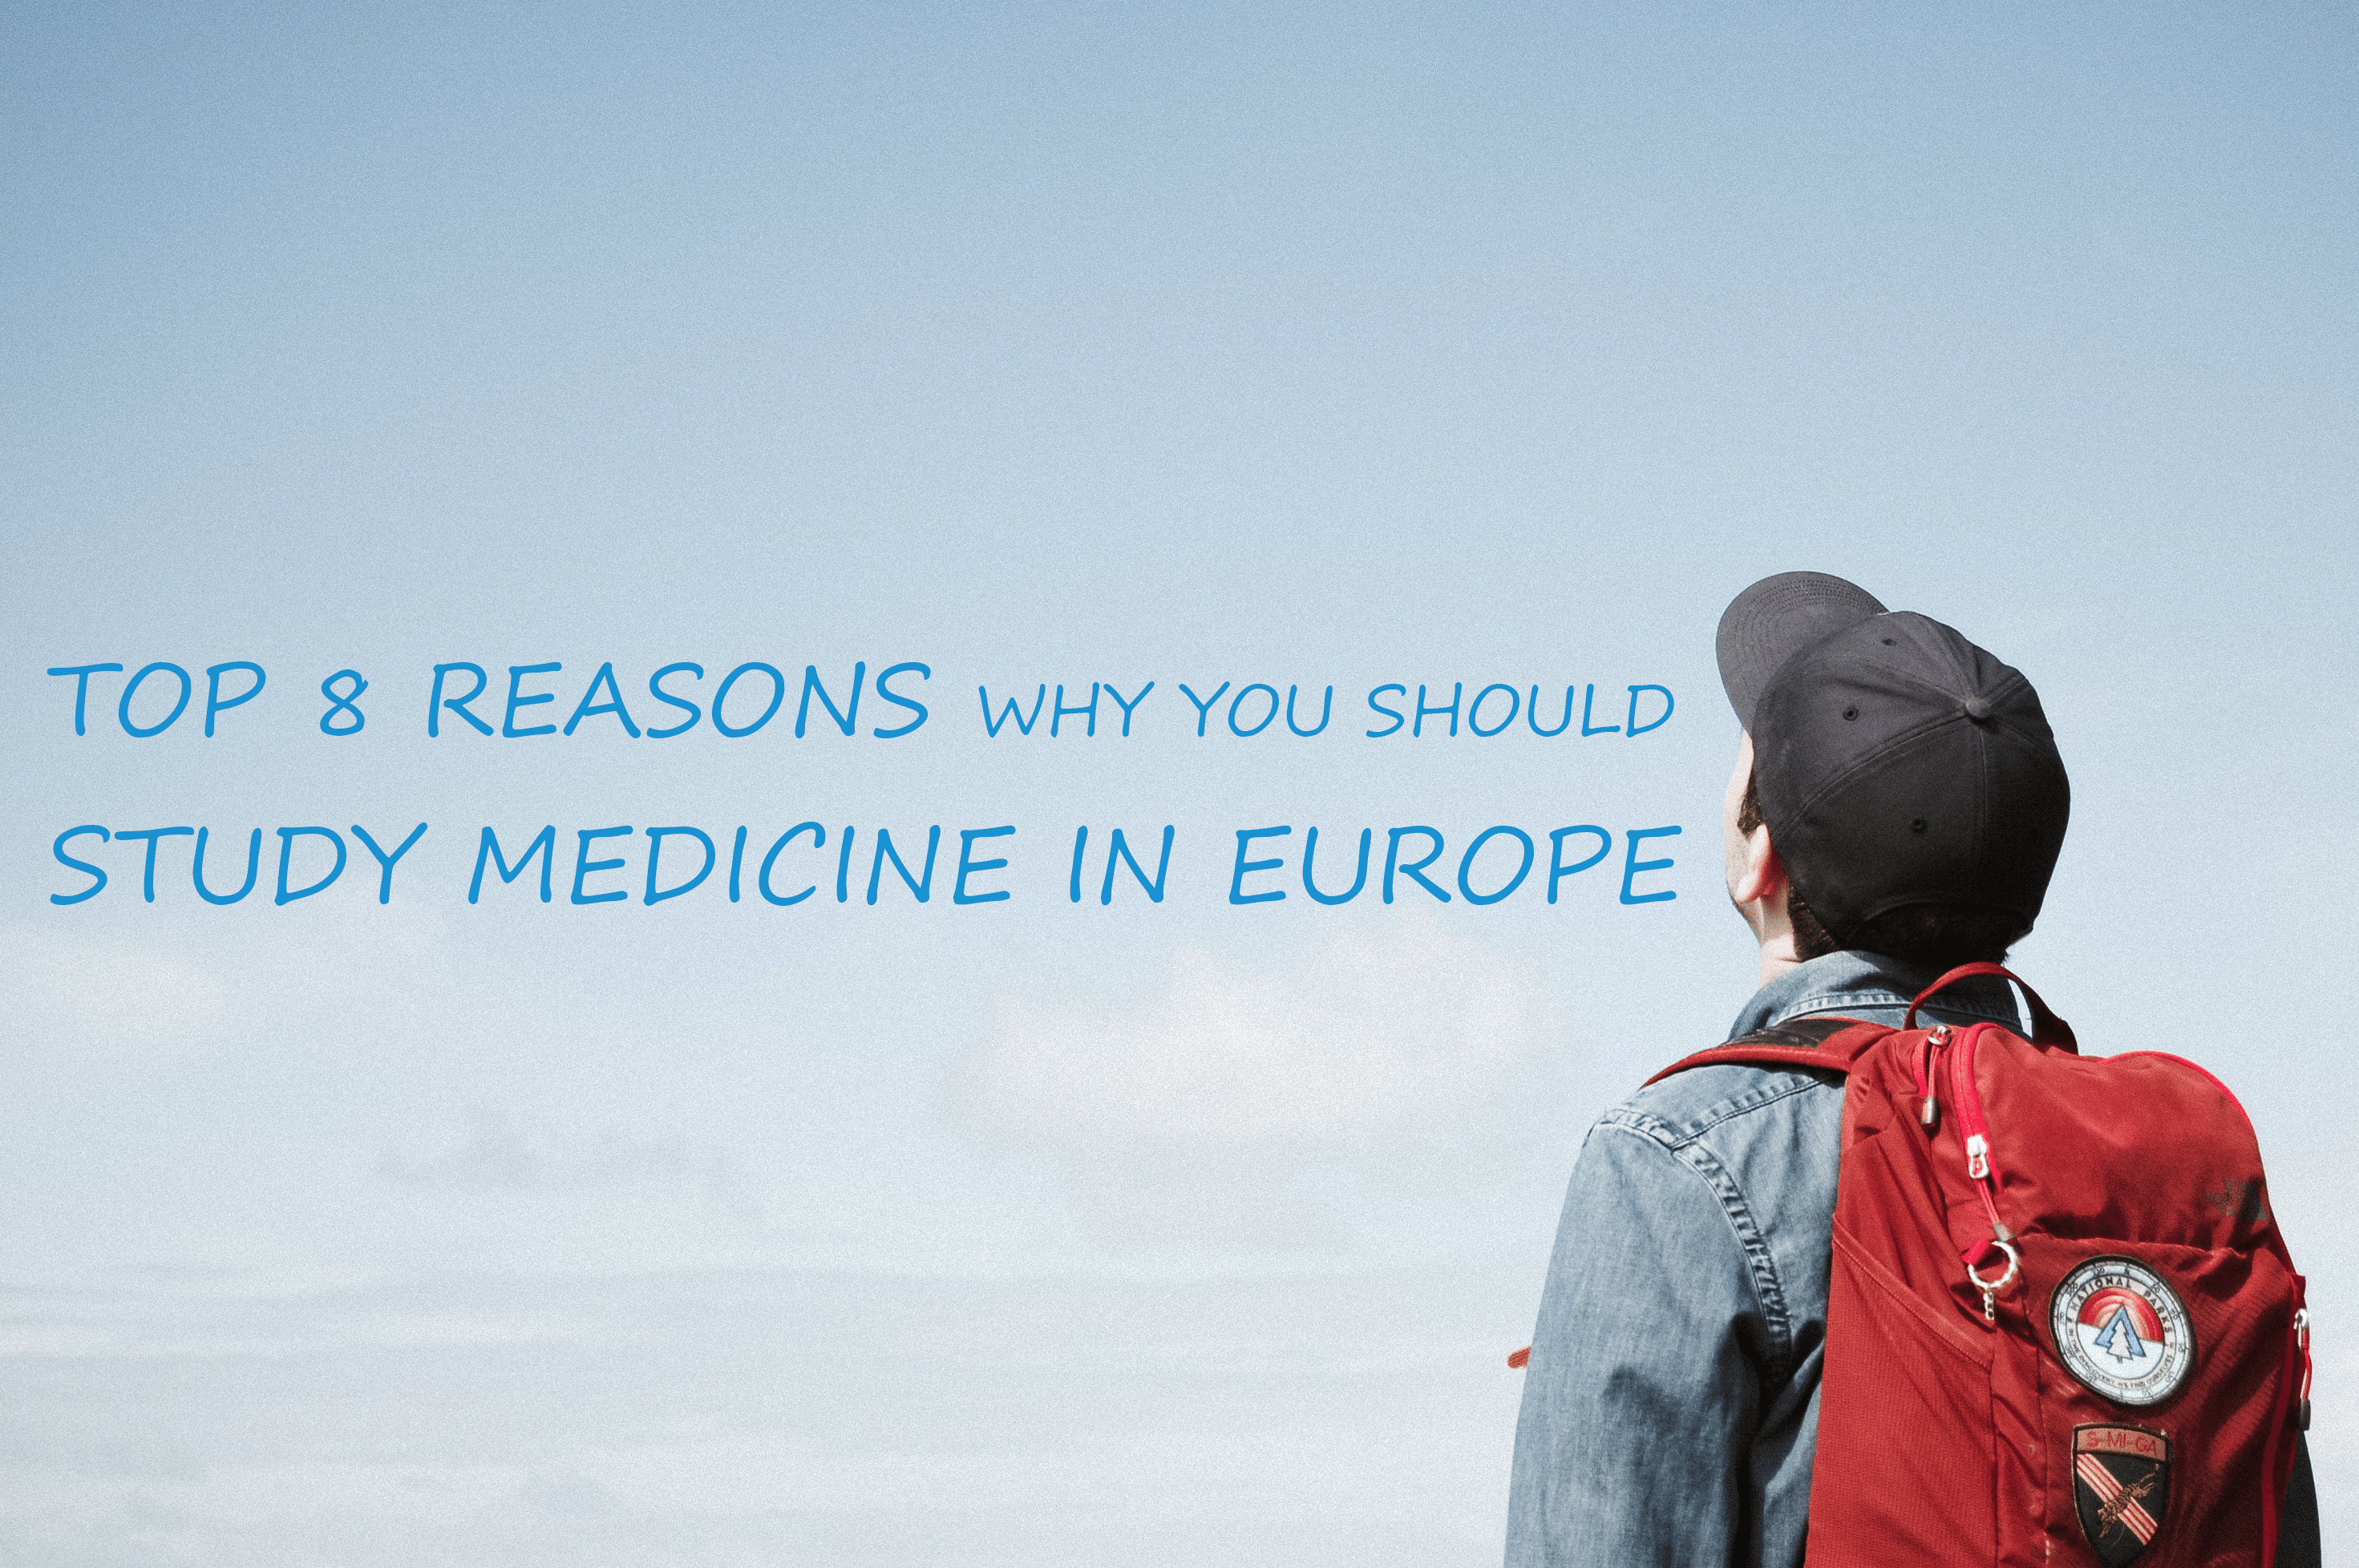 Top 8 Reasons Why You Should Study Medicine in Europe